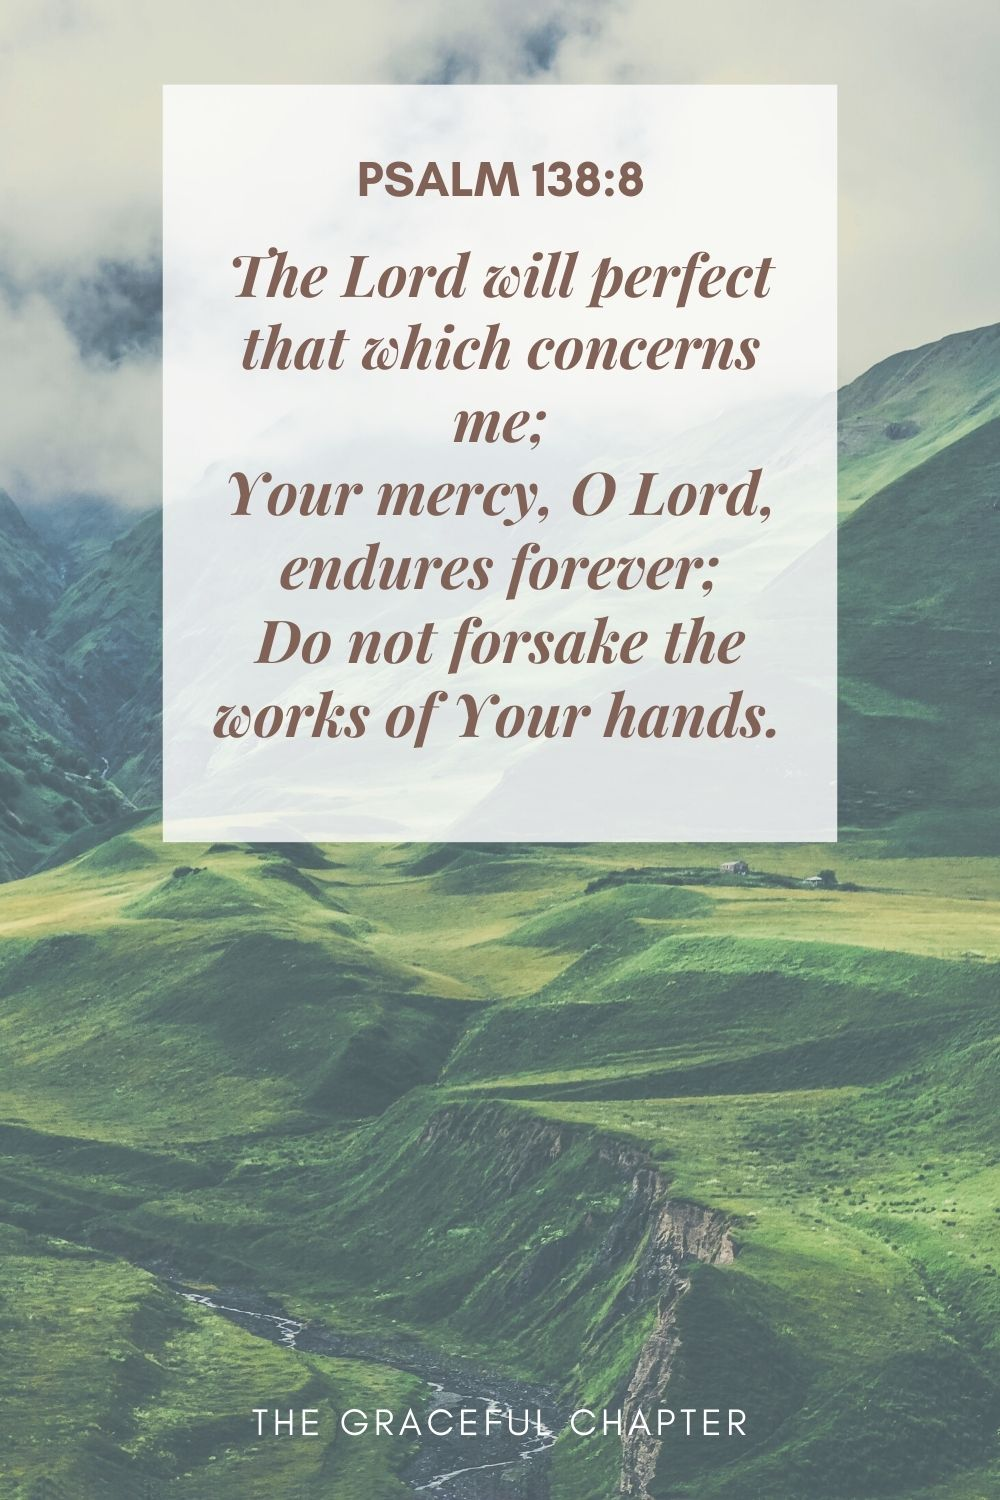 The Lord will perfect that which concerns me; Your mercy, O Lord, endures forever; Do not forsake the works of Your hands.  Psalm 138:8